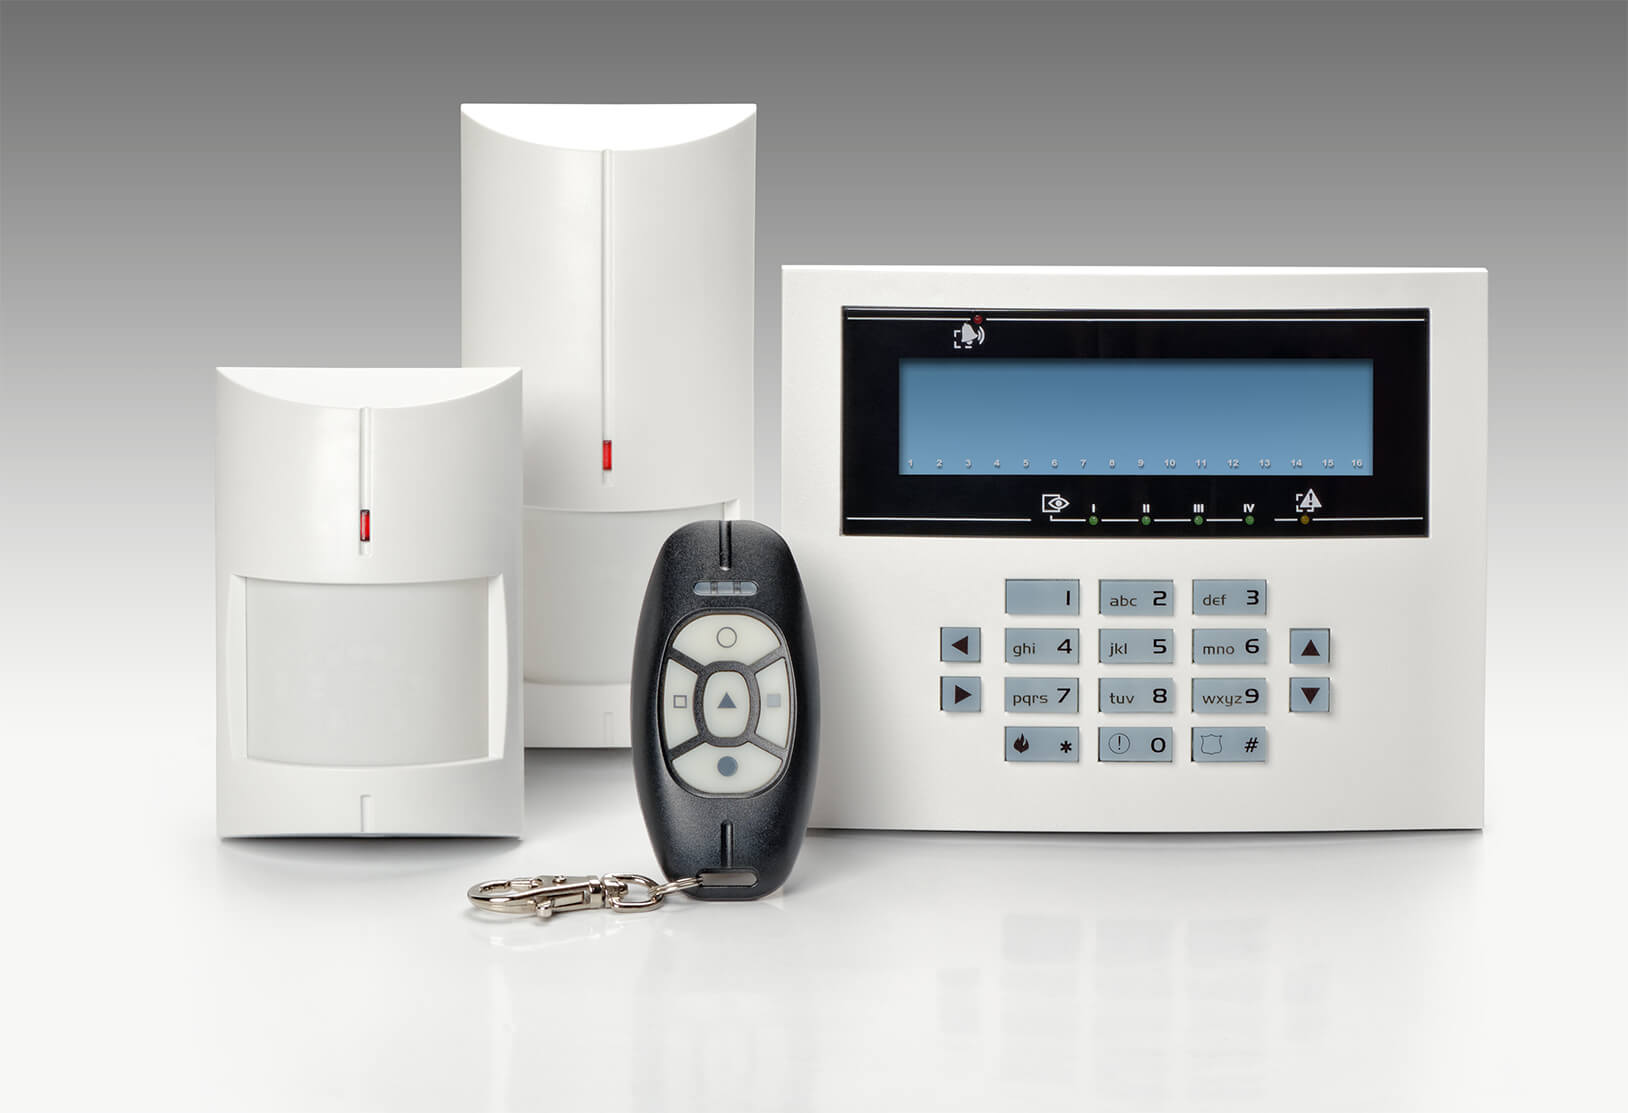 Burglar Alarms Repair in Bermondsey SE1 - Local Bermondsey SE1 alarm engineers.Call 02078872244 - See cost/price for burglar alarm repair and book your alarm engineer. No Hidden charges,No Contracts, Book as you need.Engineers on demand.All alarm makes repaired.Same day service ability.